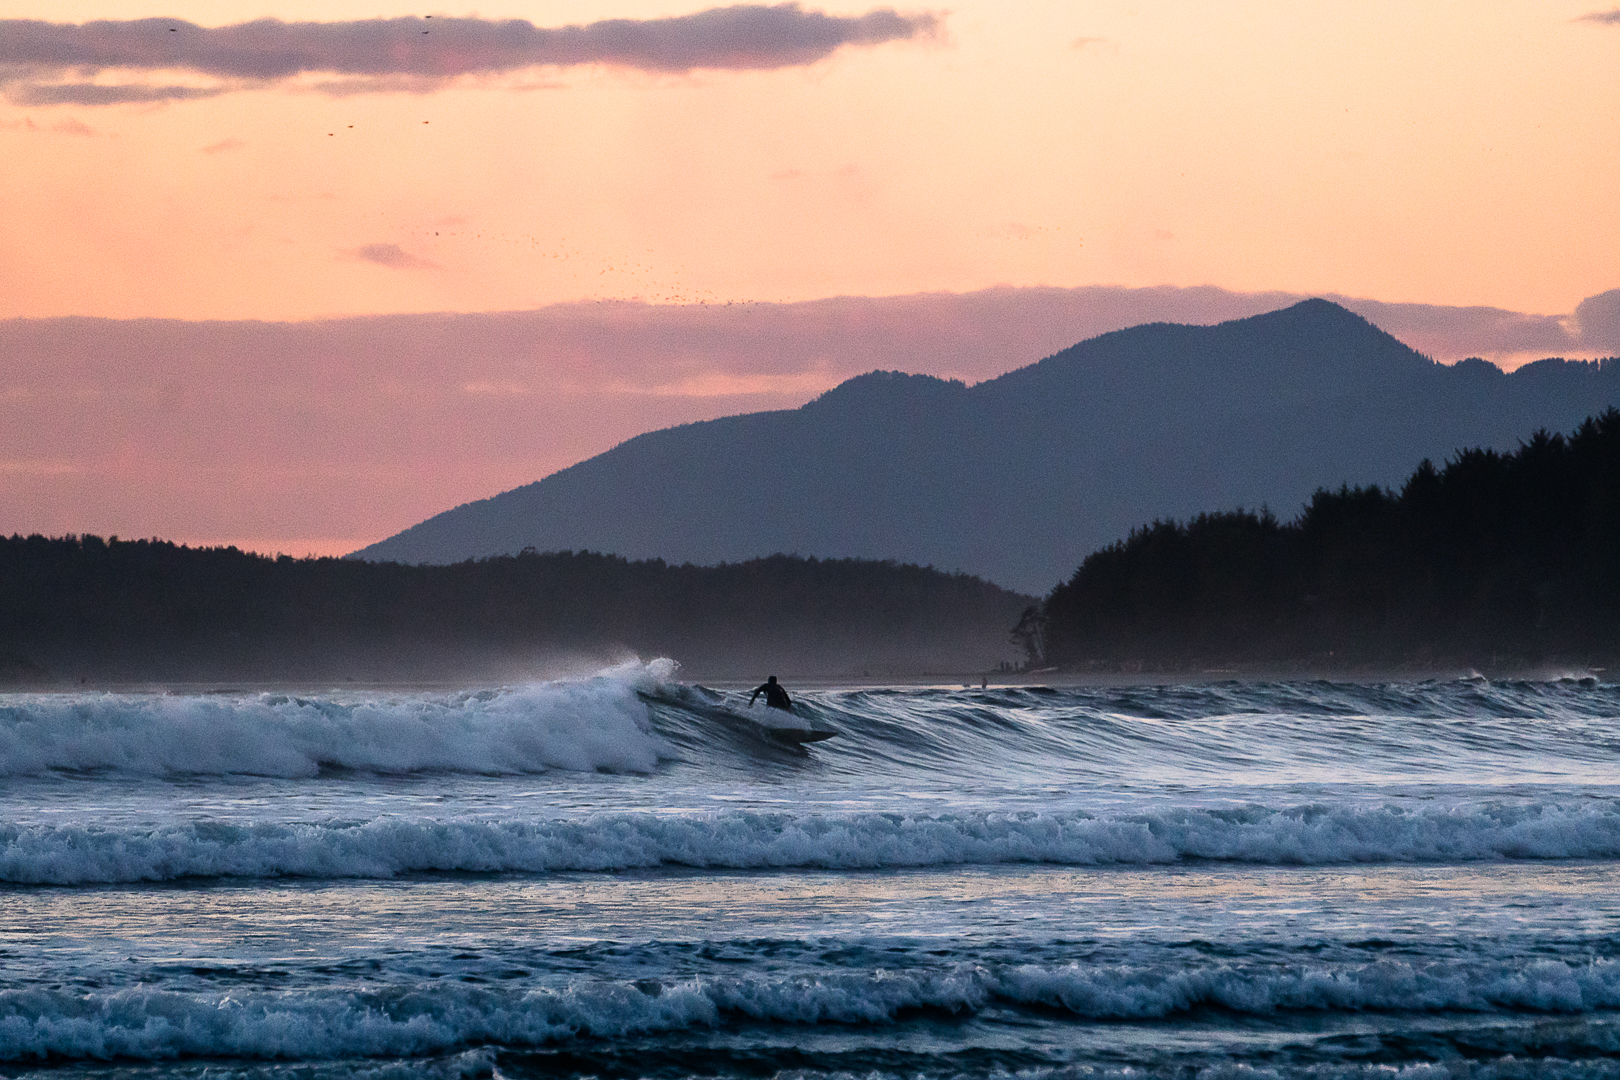 Coldwater surfing, Cox Bay Beach, Tofino, British Columbia